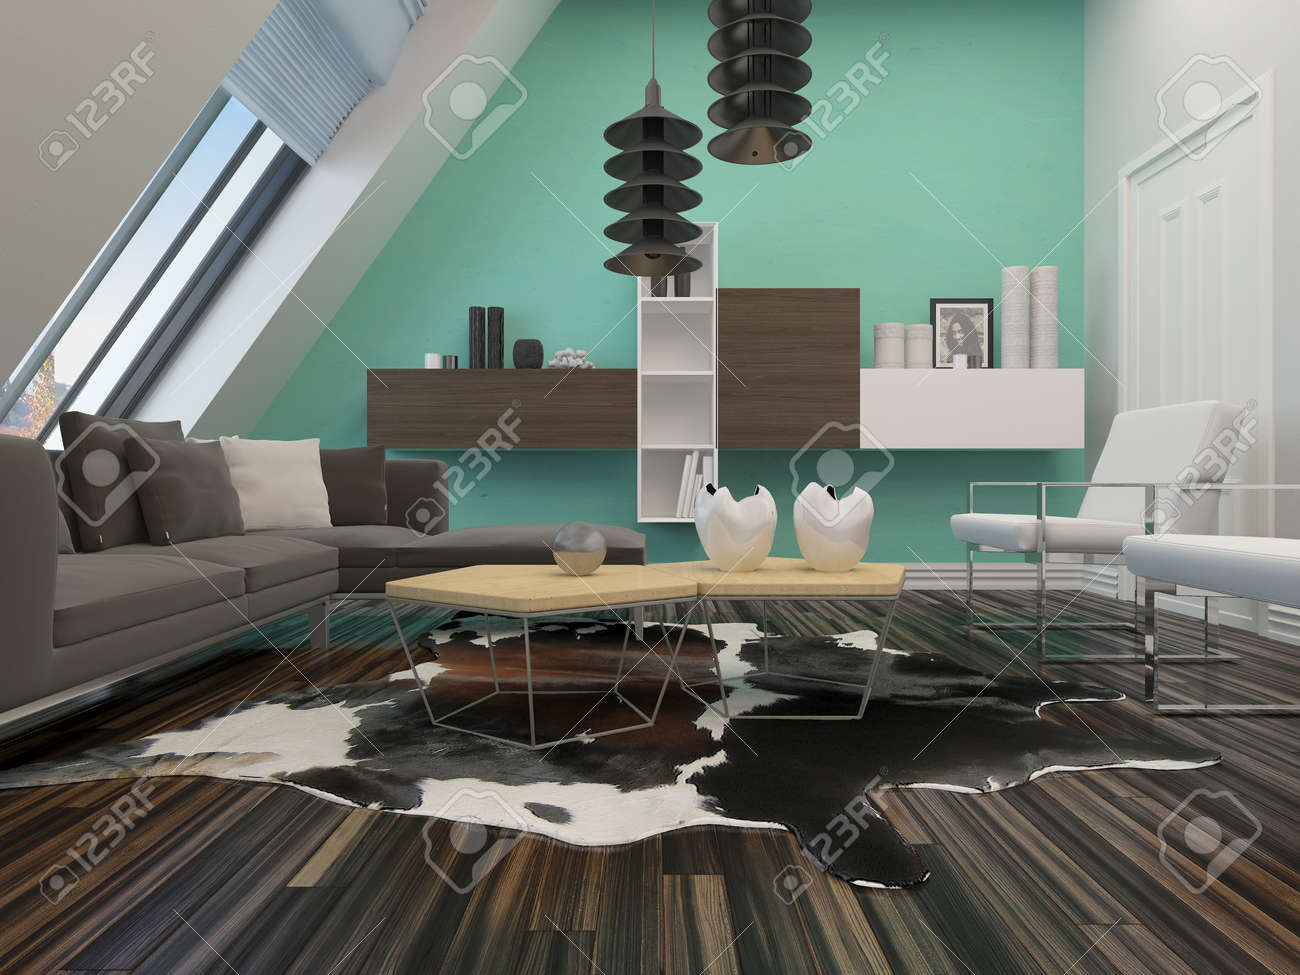 Modern Sitting Room Interior Decor With A Sloping Wall With Windows, Contemporary  Lounge Suite And